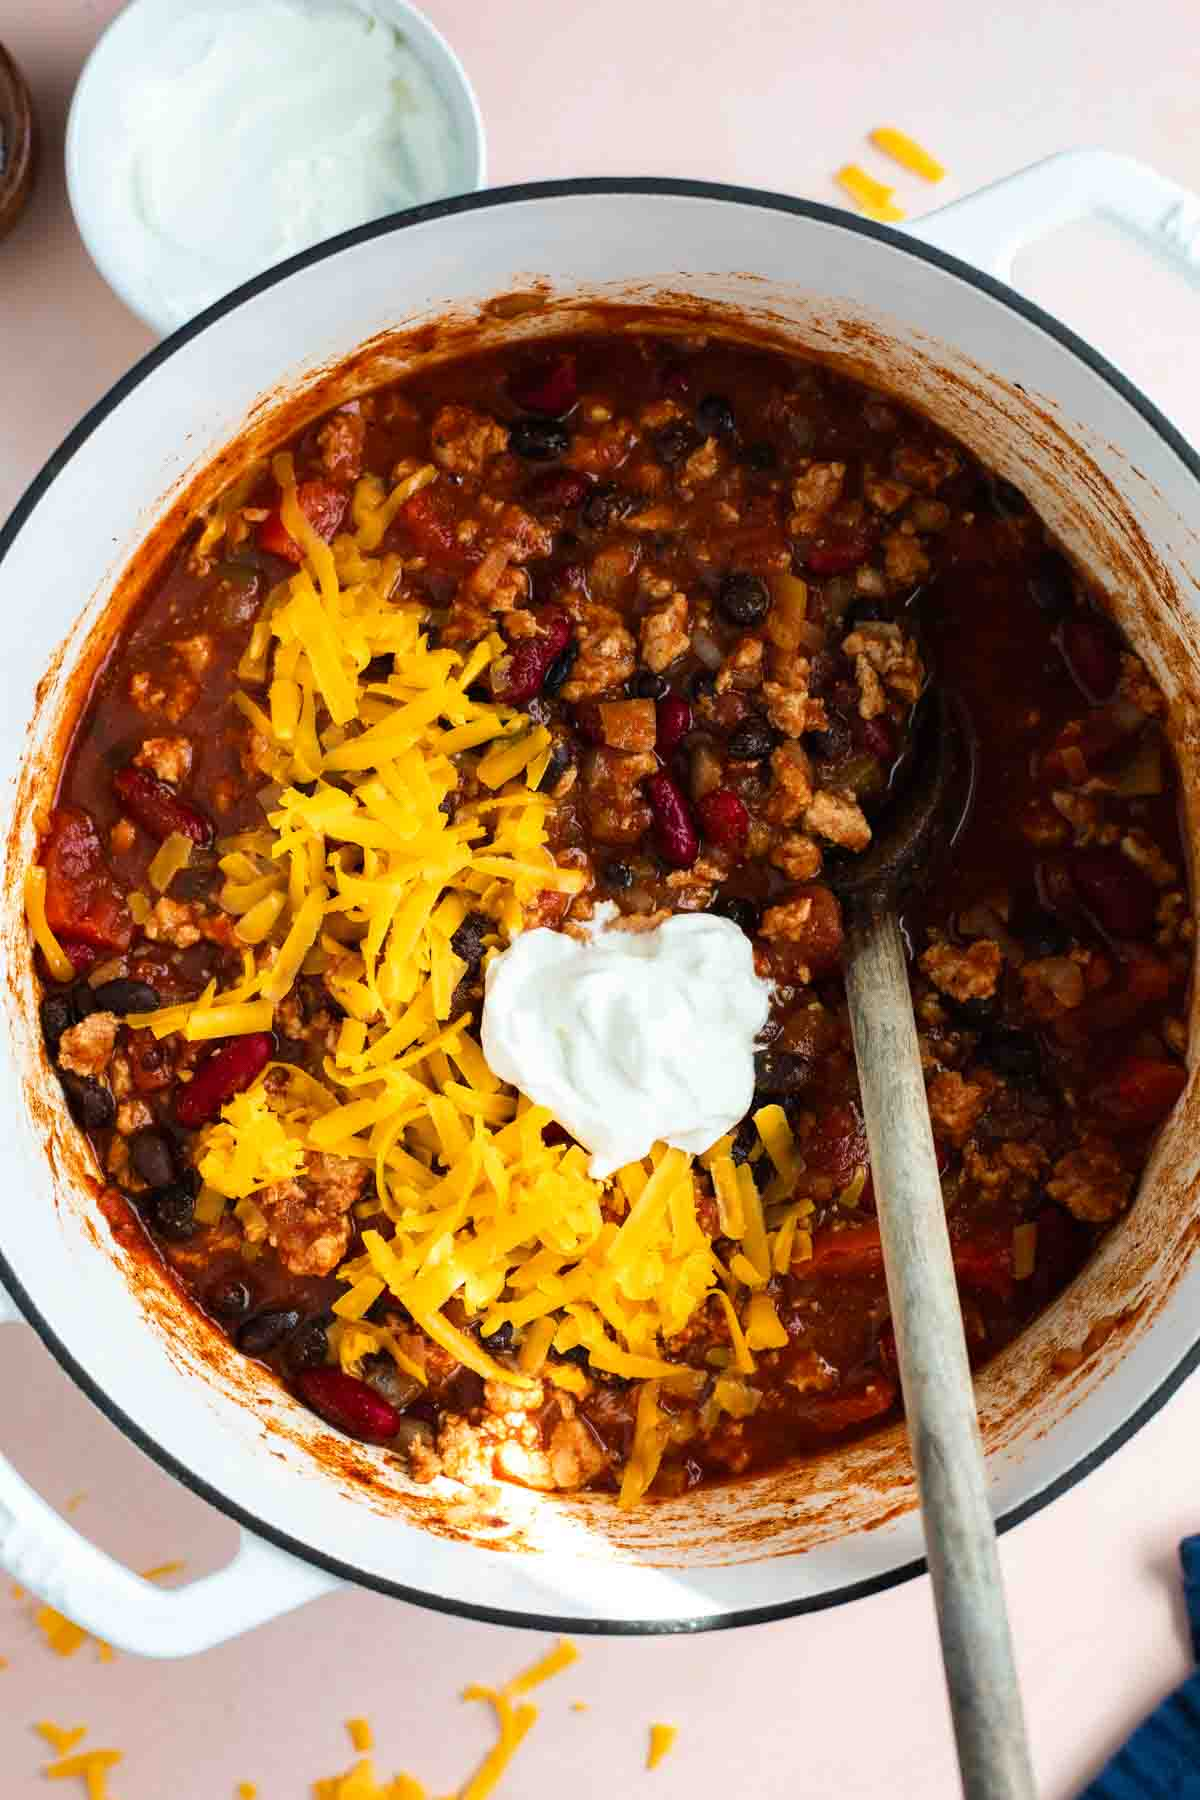 Pot filled with cooked turkey chili, topped with shredded cheese and sour cream.